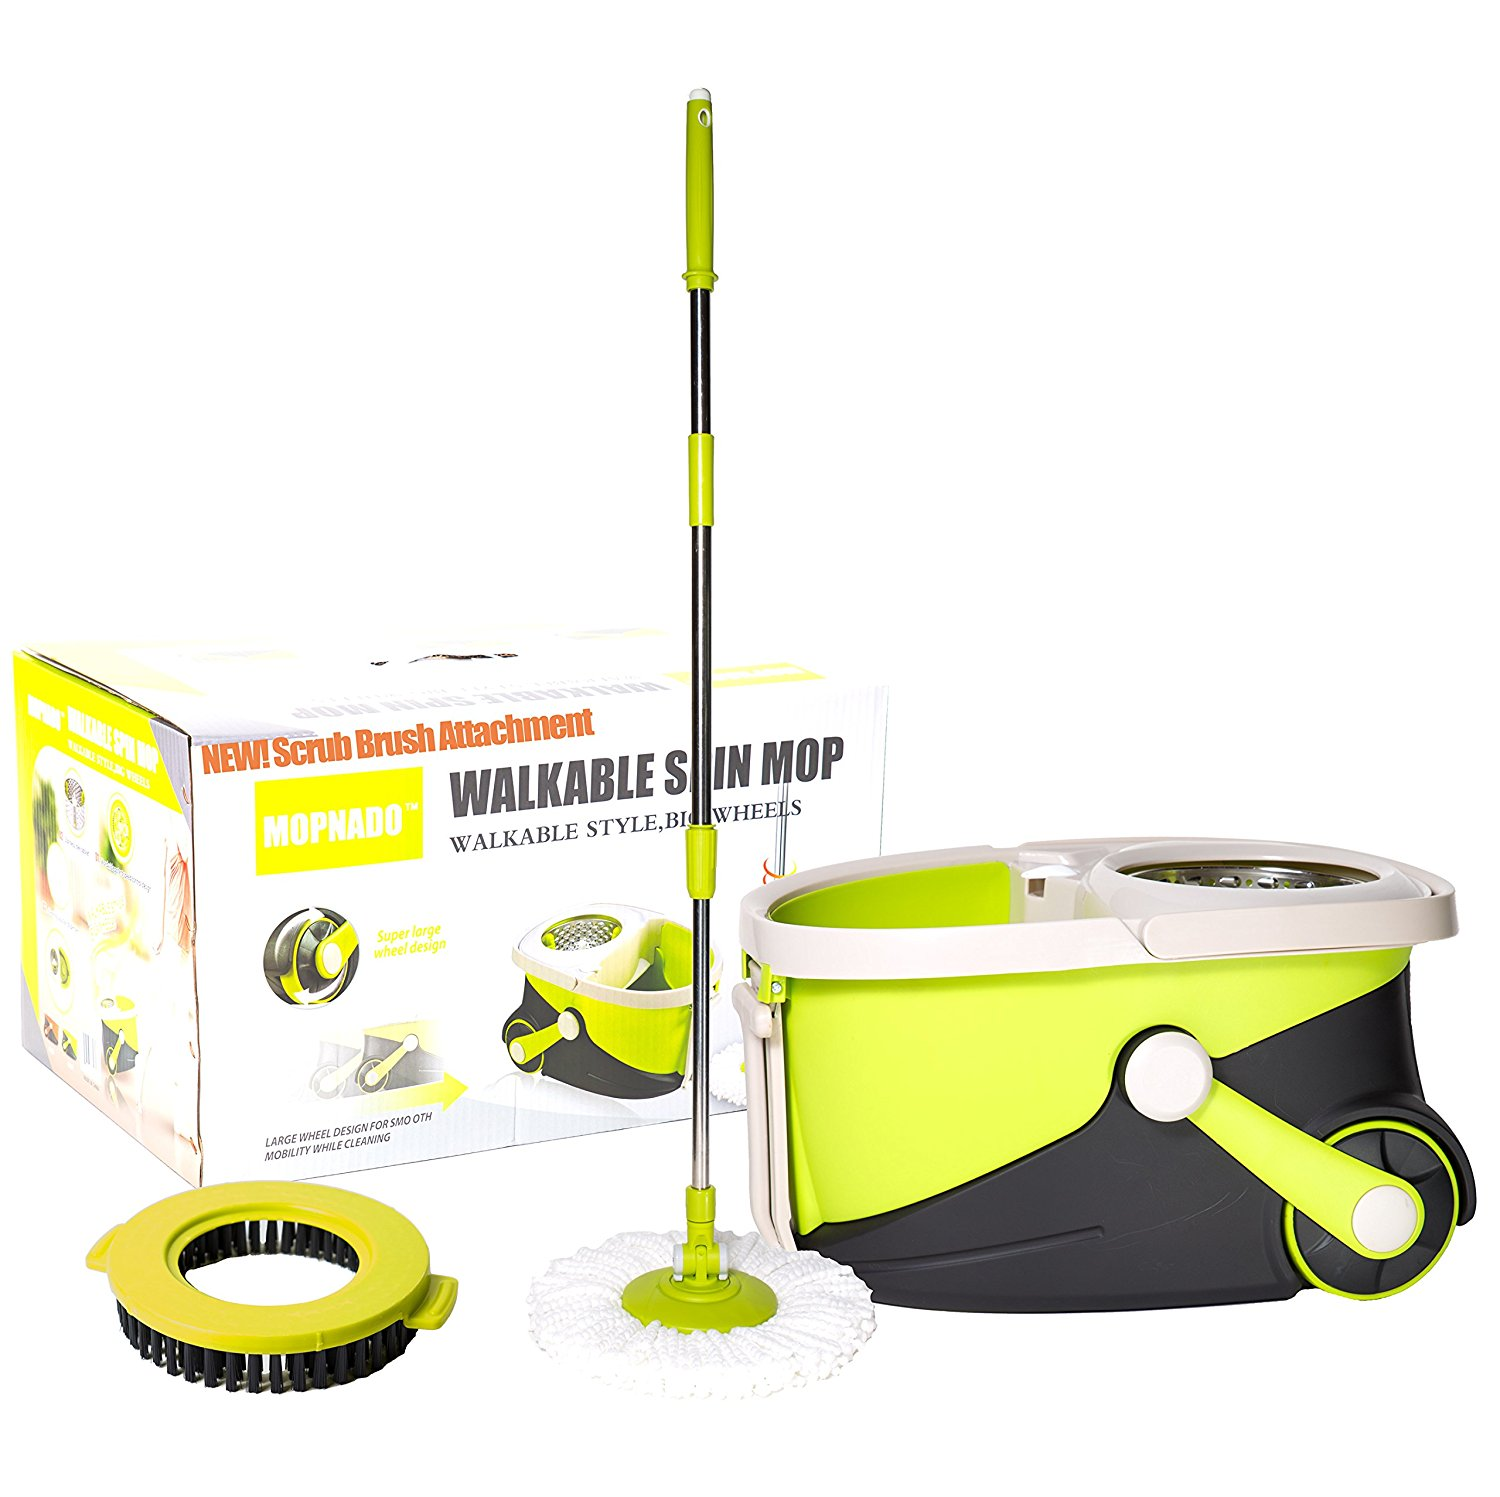 Twist and shout mop review - Mopnado Walkable Deluxe Spin Mop